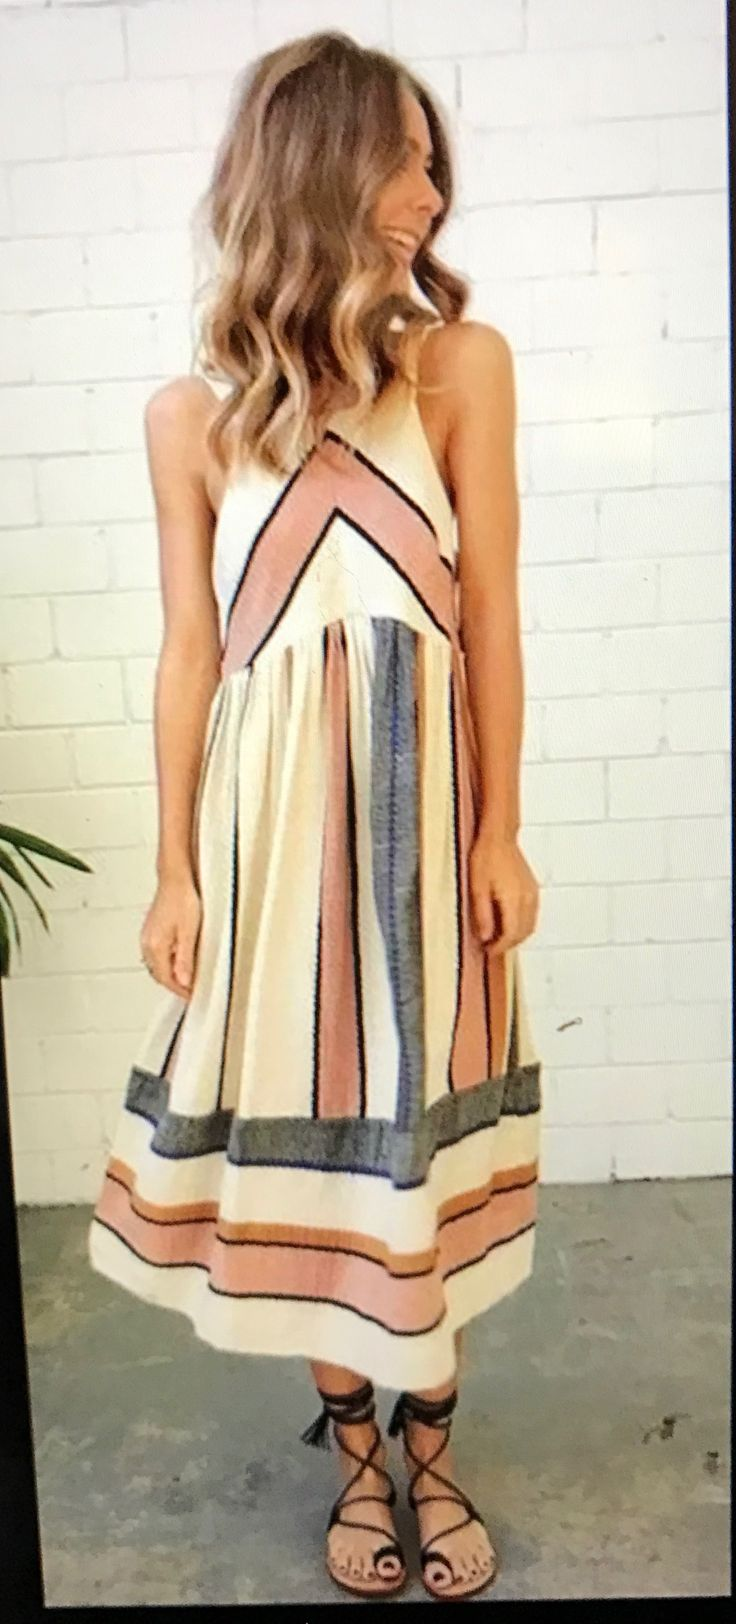 Stitch Fix Fashion 2017! Ask your stylist for something like this in your next fix, delivered right to your door! #sponsored #StitchFix Boho casual cream, neutral striped dress